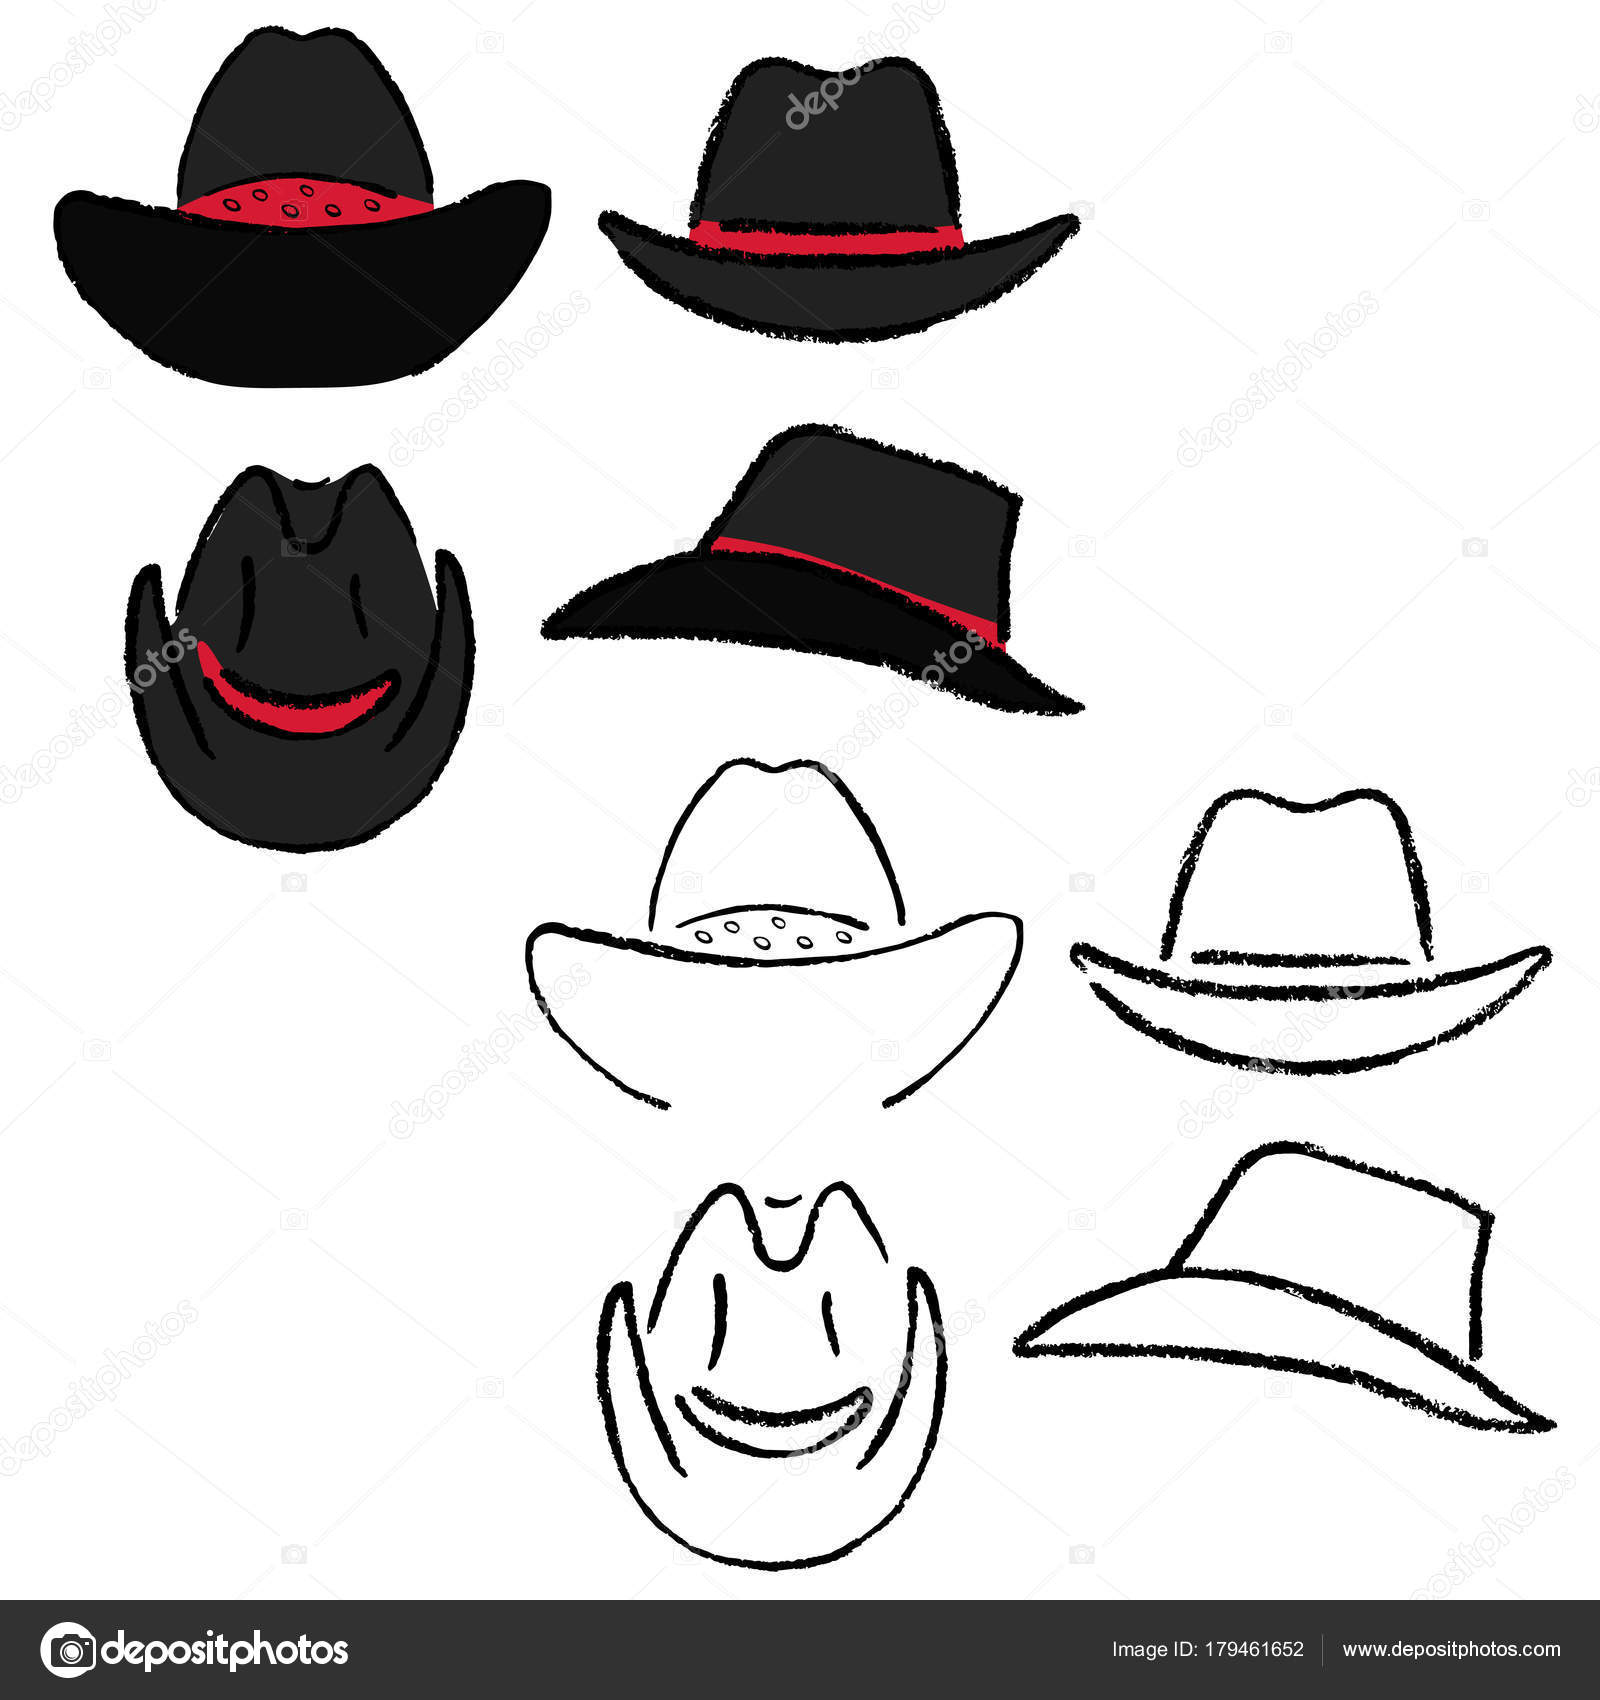 Cowboy Hat Outlined Oil Pastel Template Sketch Front Back Side Views Vector Illustration Isolated On White Background By Arlatis